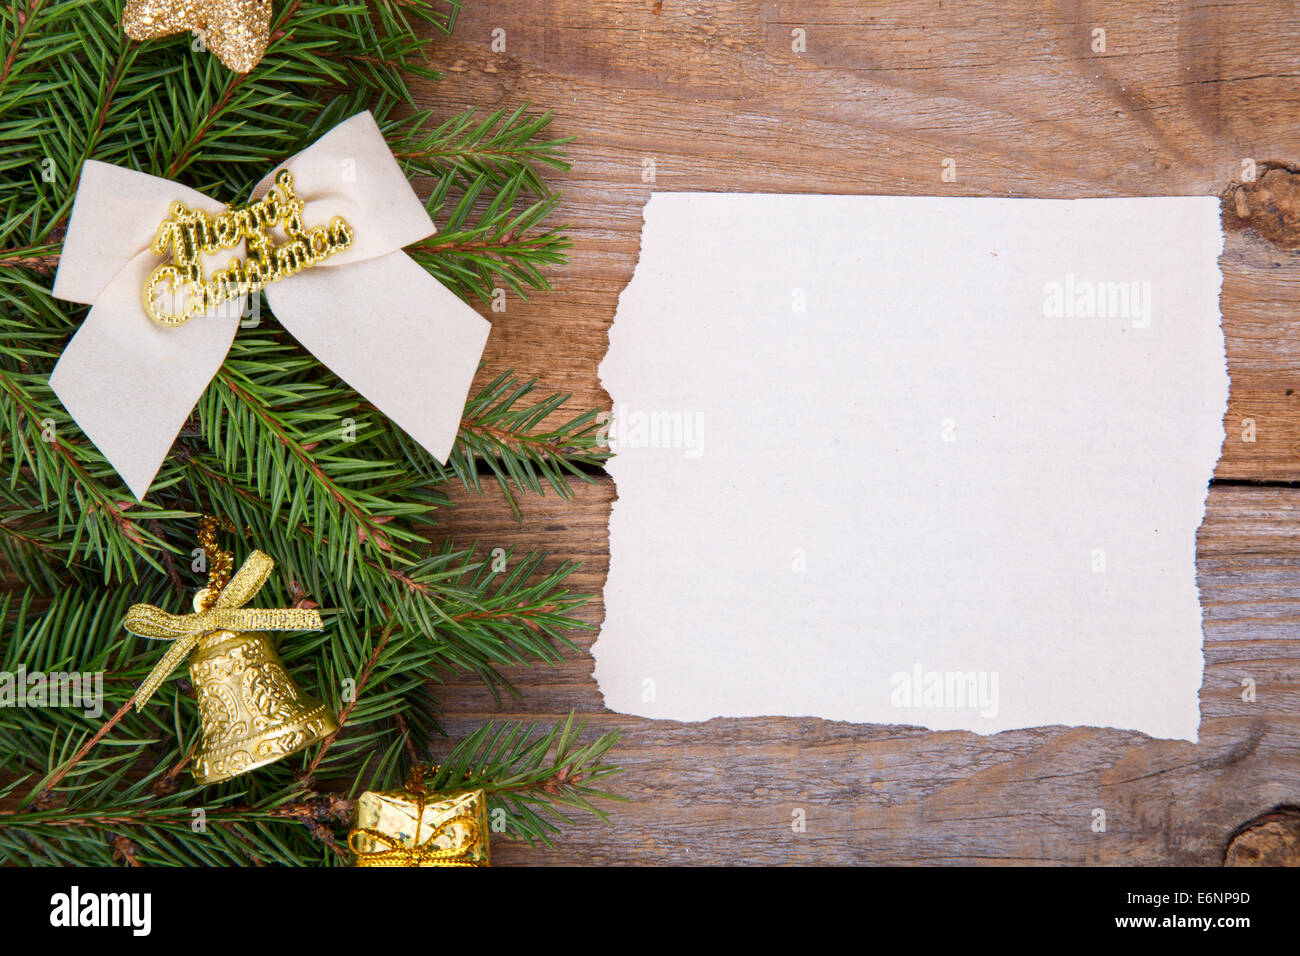 blank christmas card or invitation with gold envelope surrounded by